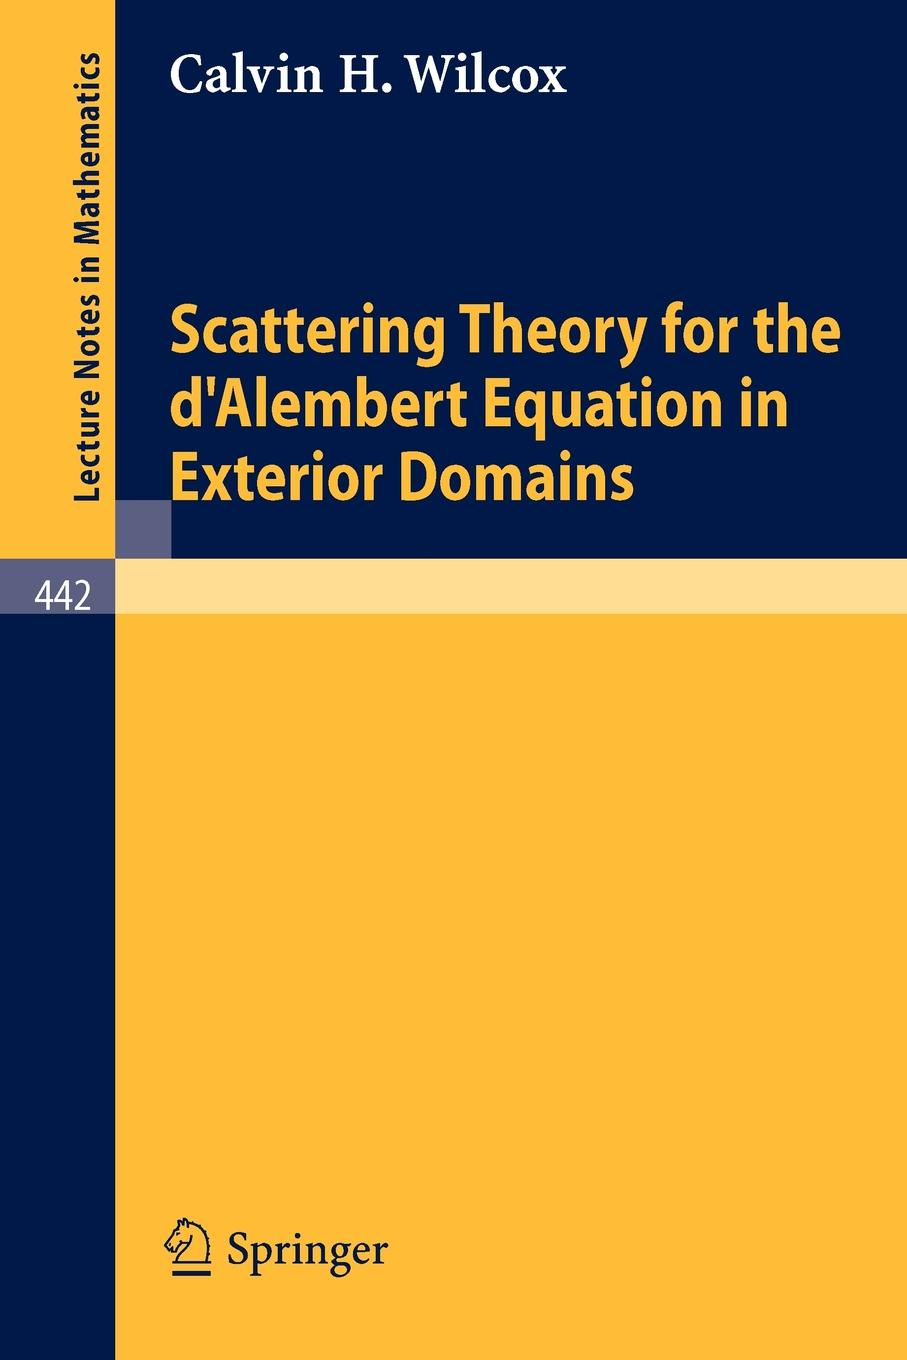 Calvin H. Wilcox Scattering Theory for the DAlembert Equation in Exterior Domains